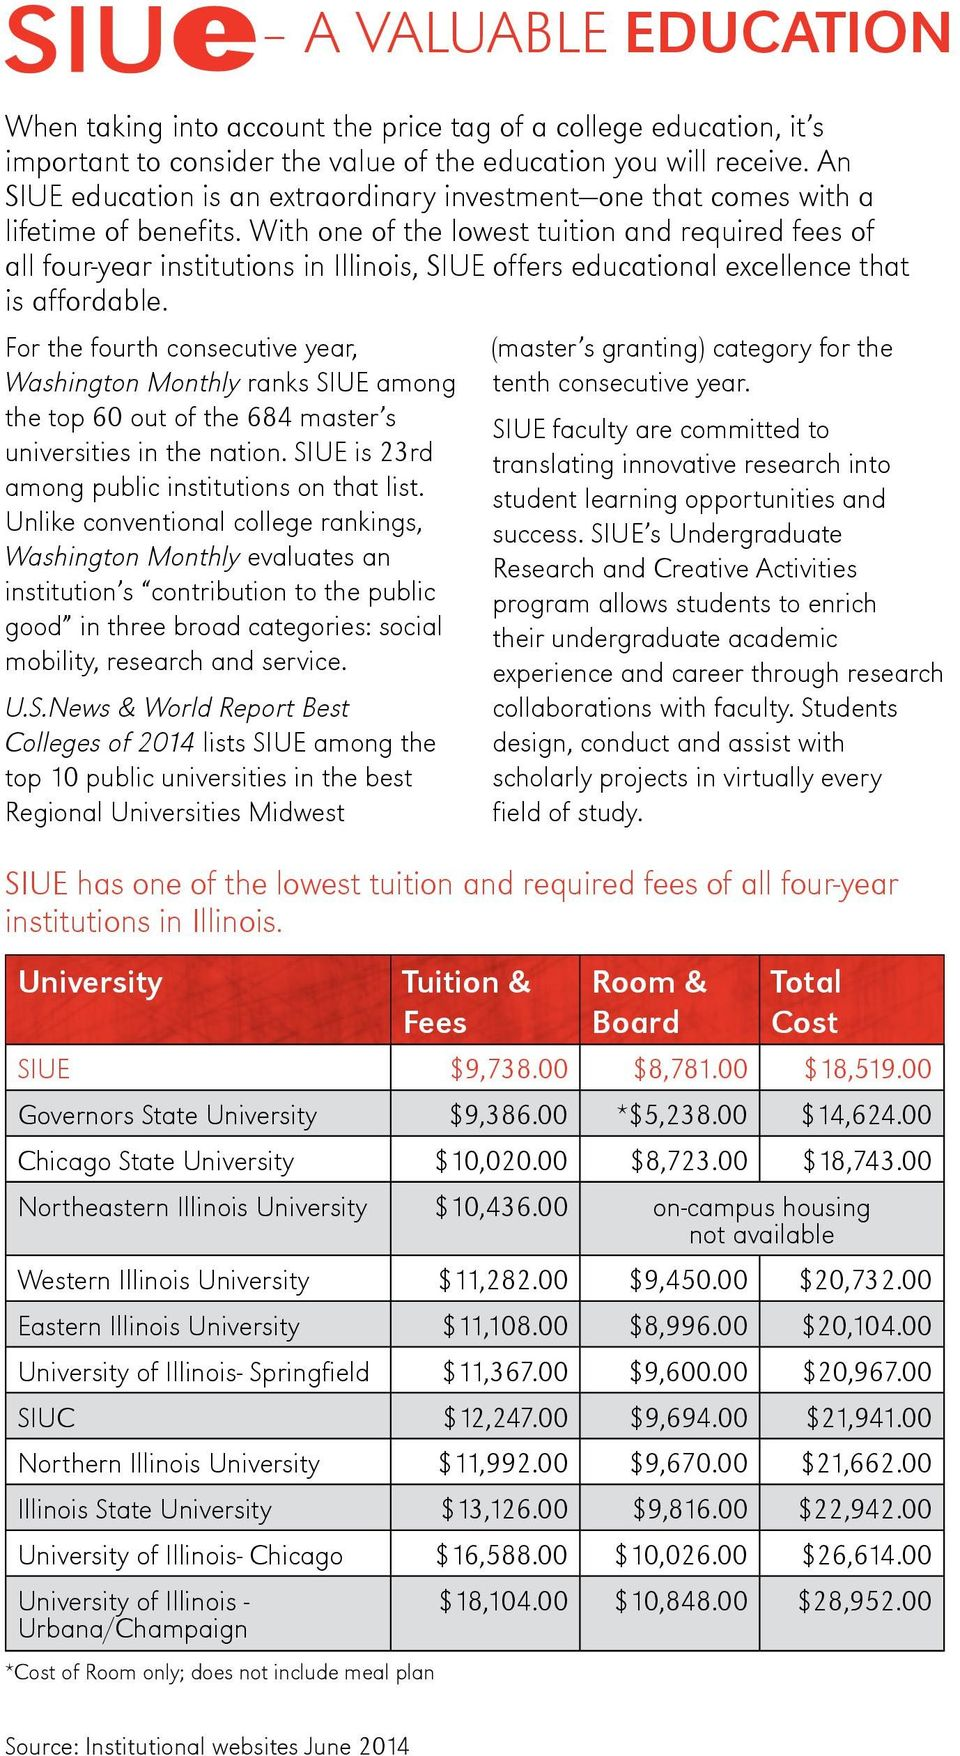 With one of the lowest tuition and required fees of all four-year institutions in Illinois, SIUE offers educational excellence that is affordable.